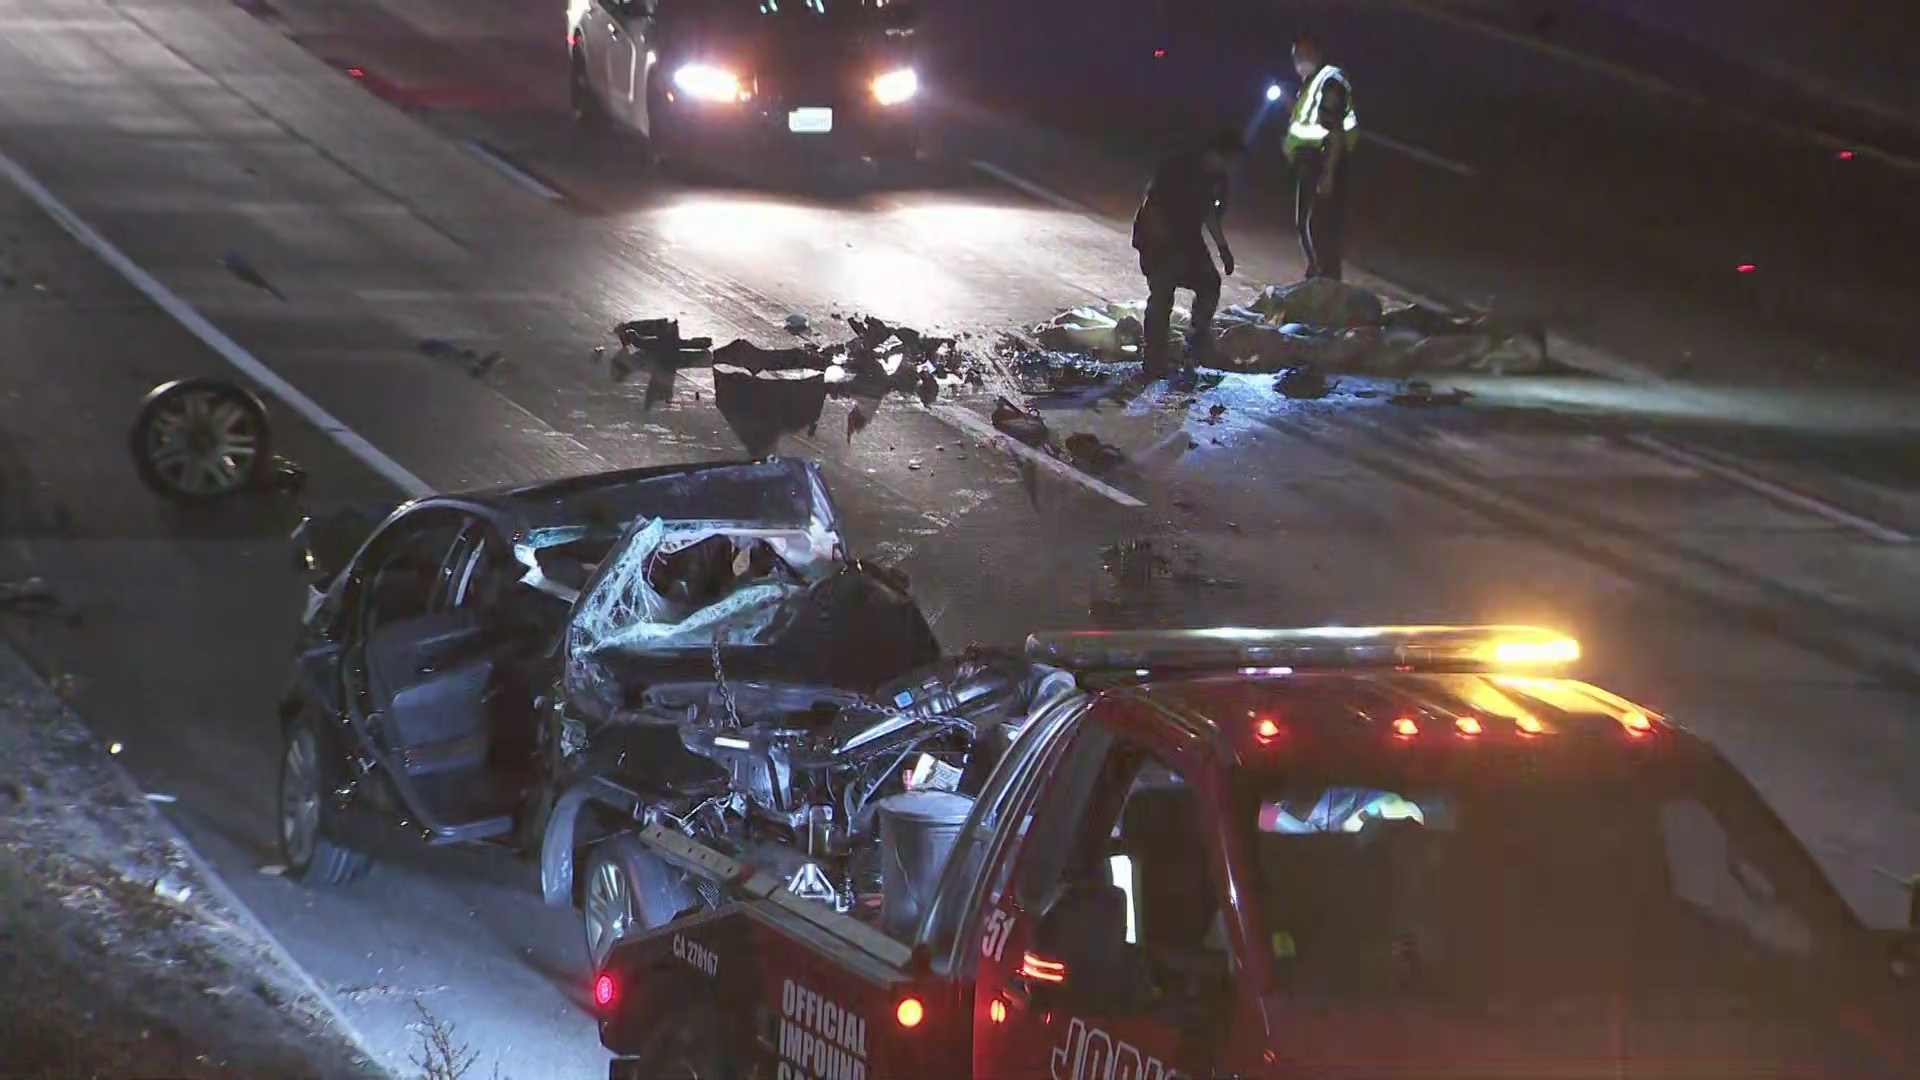 Crews work to clear the 101 Freeway in Hollywood after a fatal crash on Oct. 8, 2020. (KTLA)